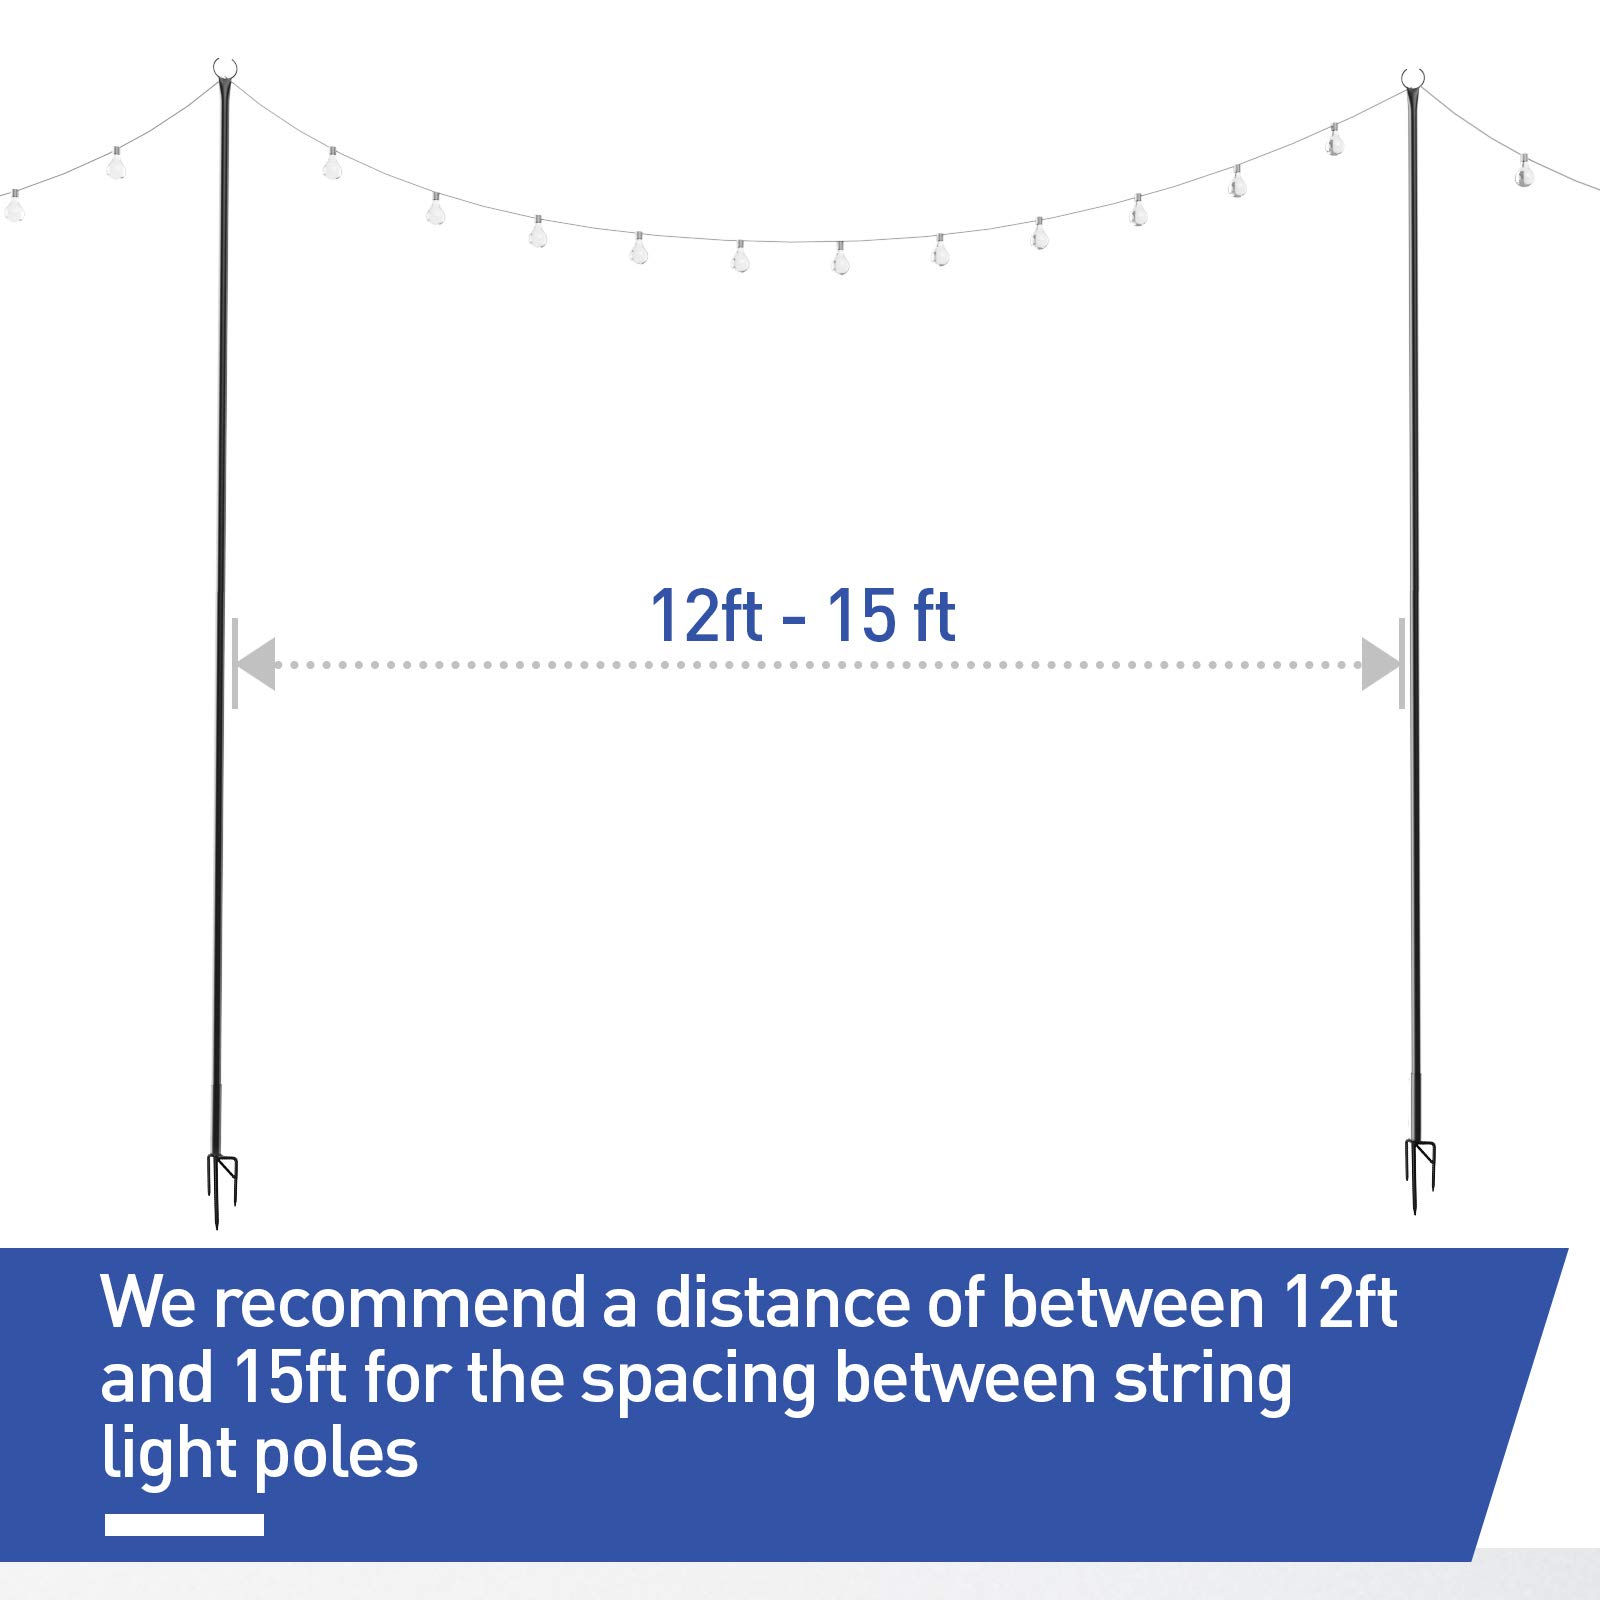 Outdoor String Lights Pole – Light Up Patio or Garden with LED Or Solar  Hanging Bulbs - Long Fork 8'' to Dig Deep and Stand Tall - Waterproof Steel